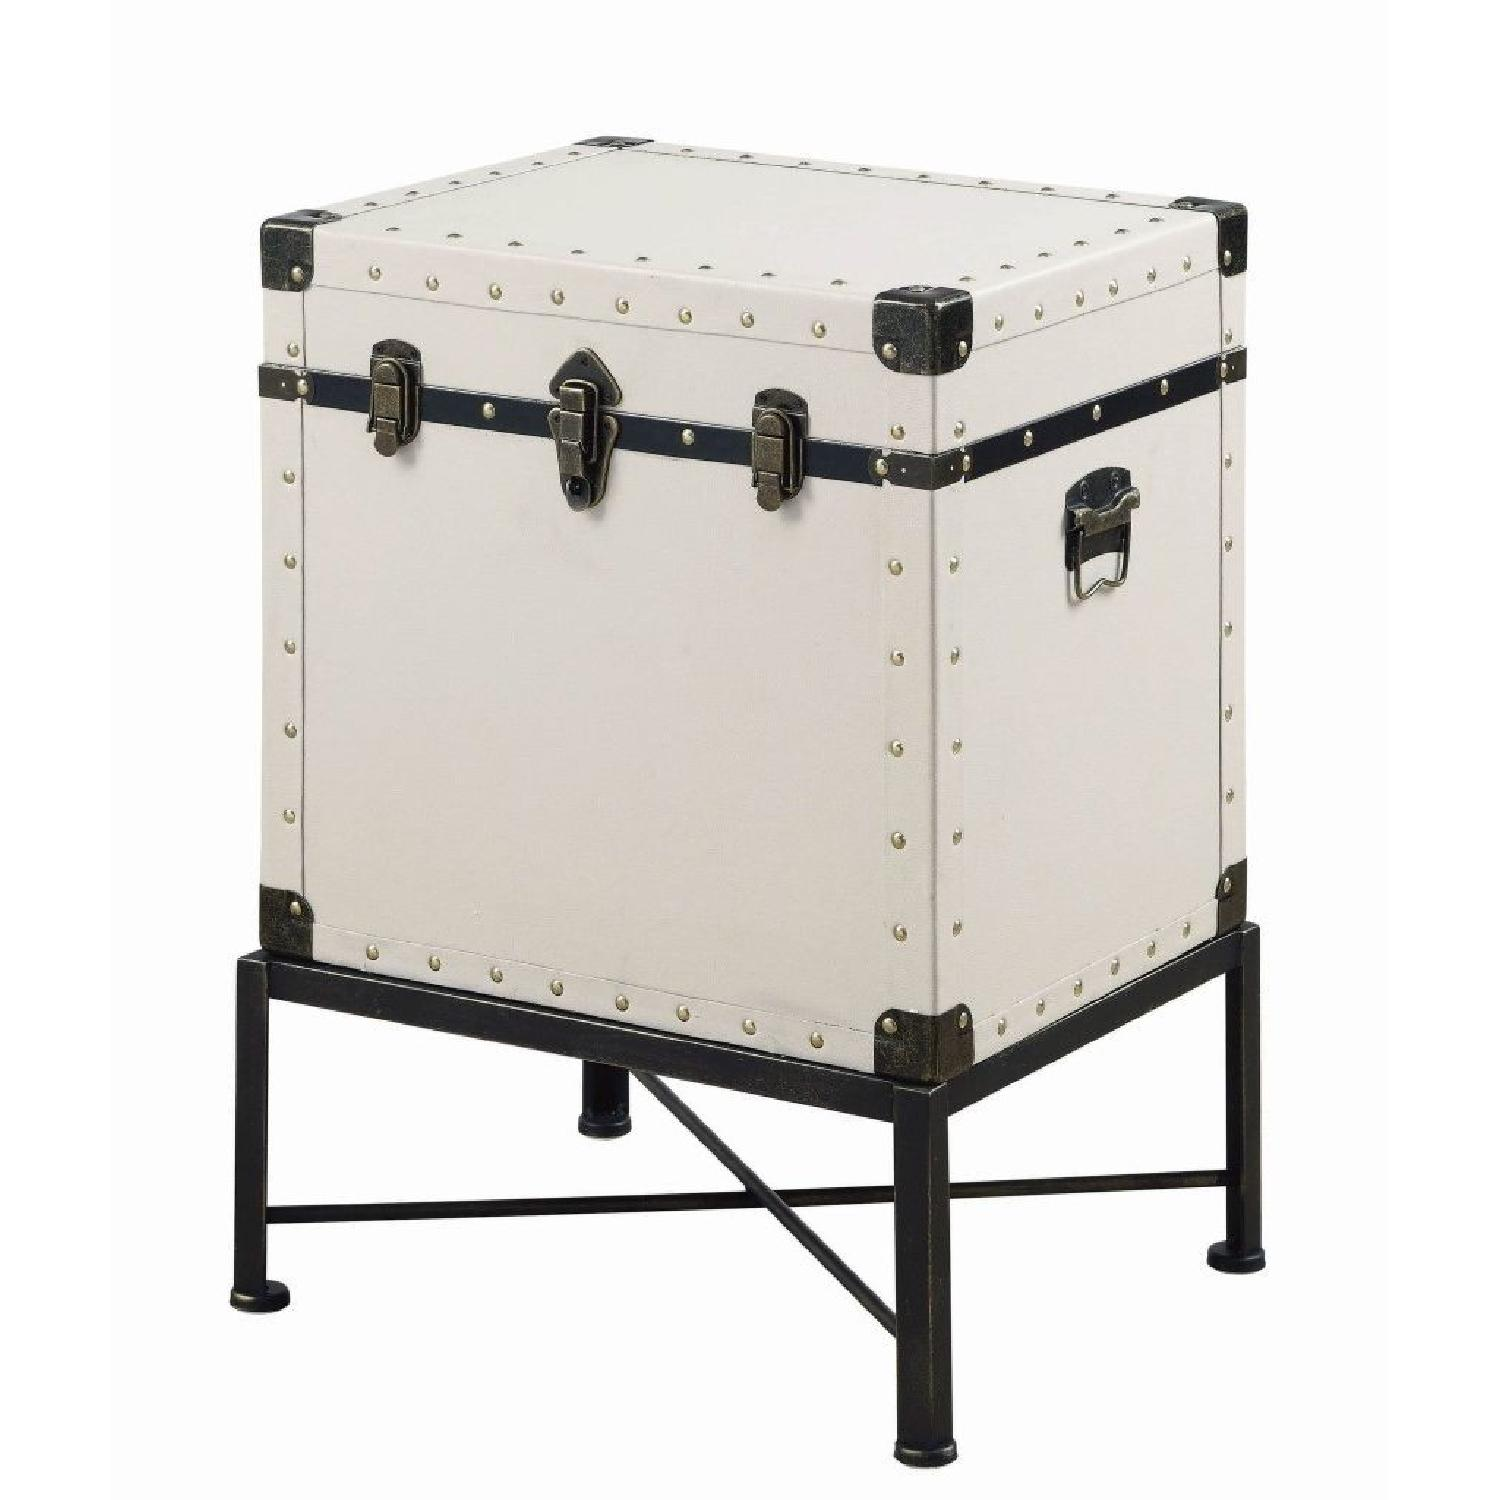 Lift Top Accent Cabinet in White w/ Nailhead Accent - image-1